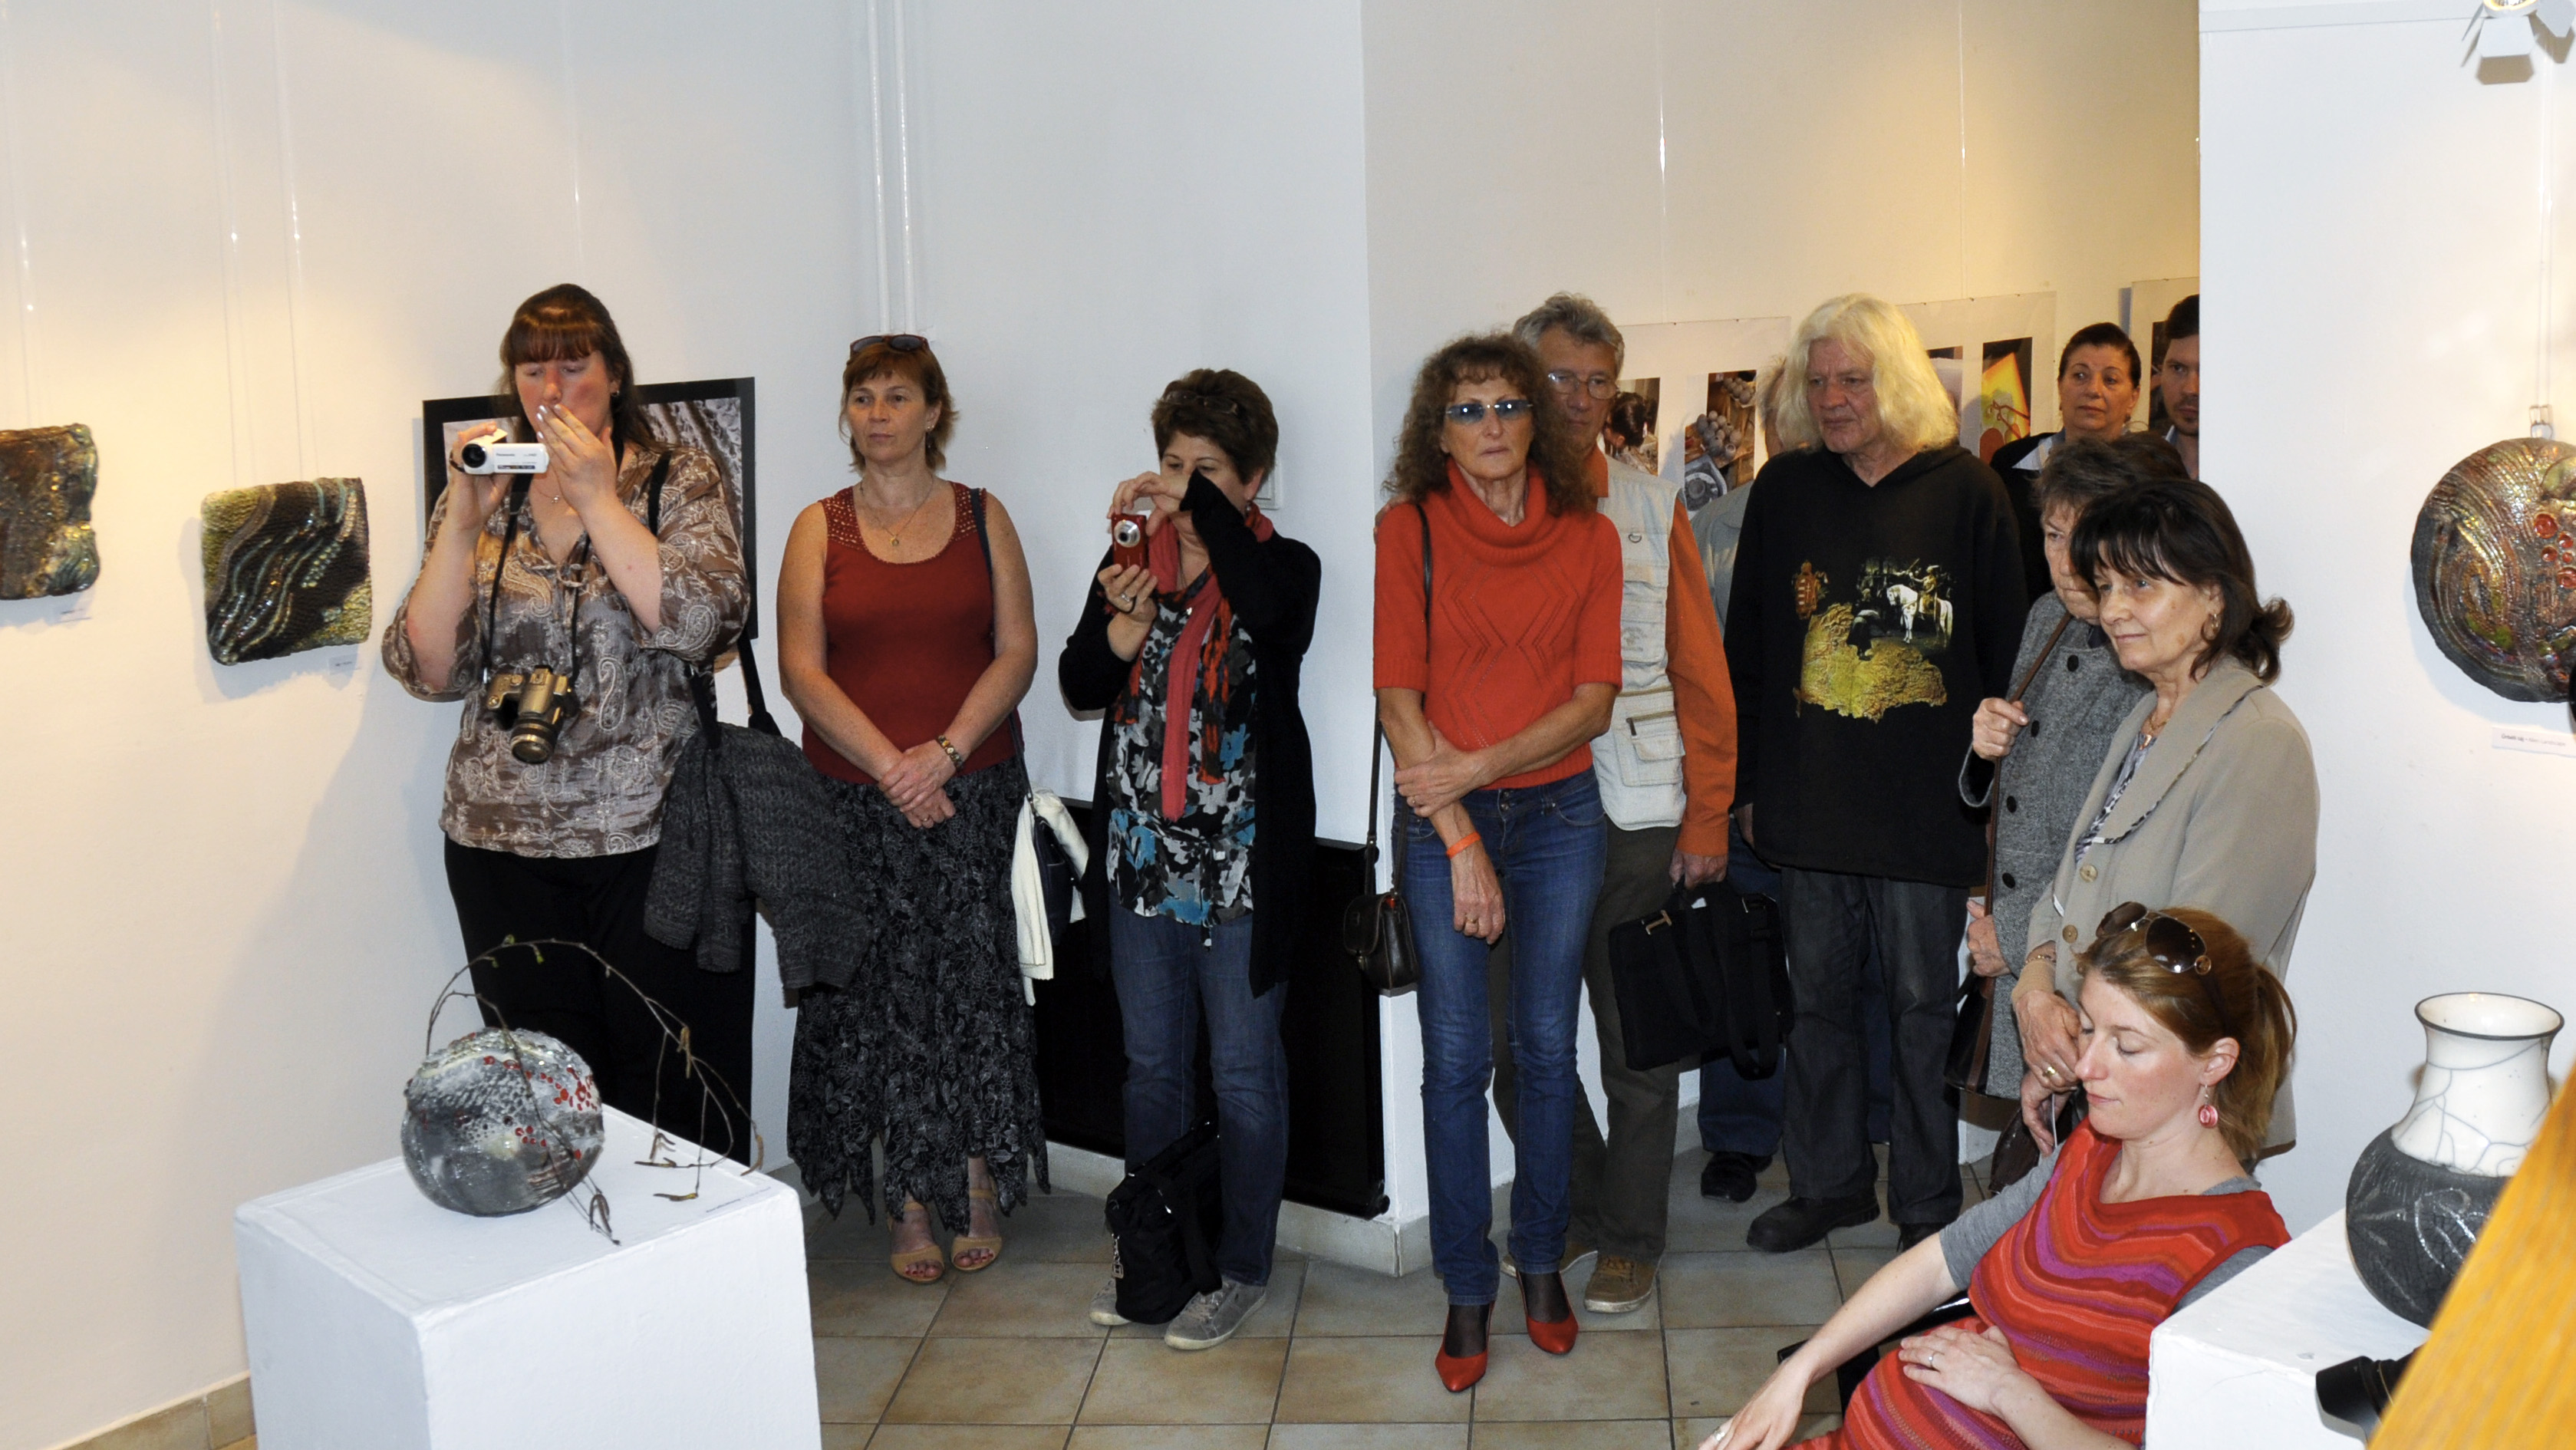 Audience - Tangible Universes: Solo Exhibition with Whispering Globes